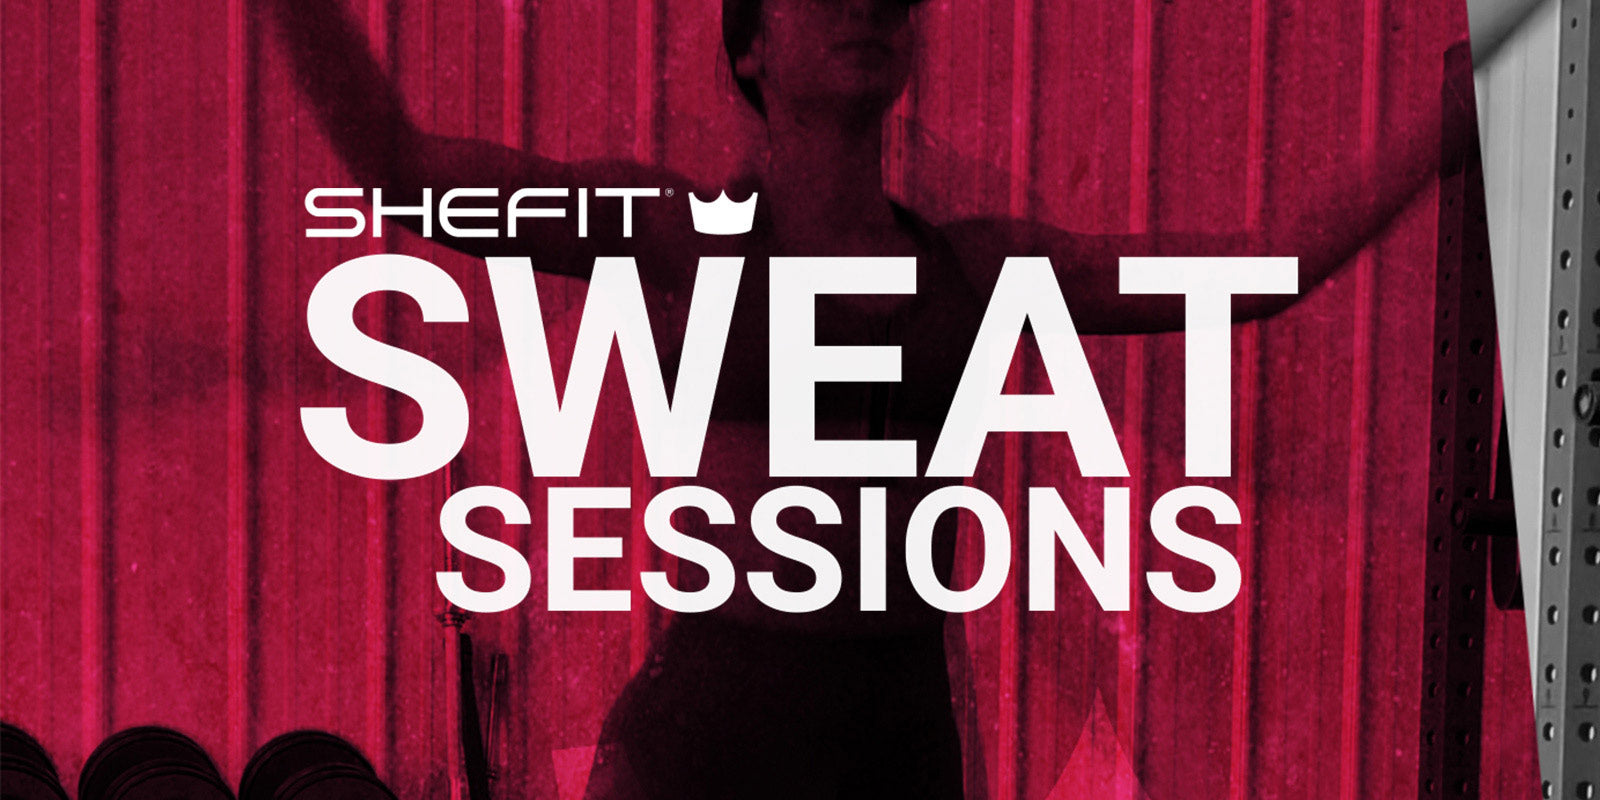 Sweat Sessions